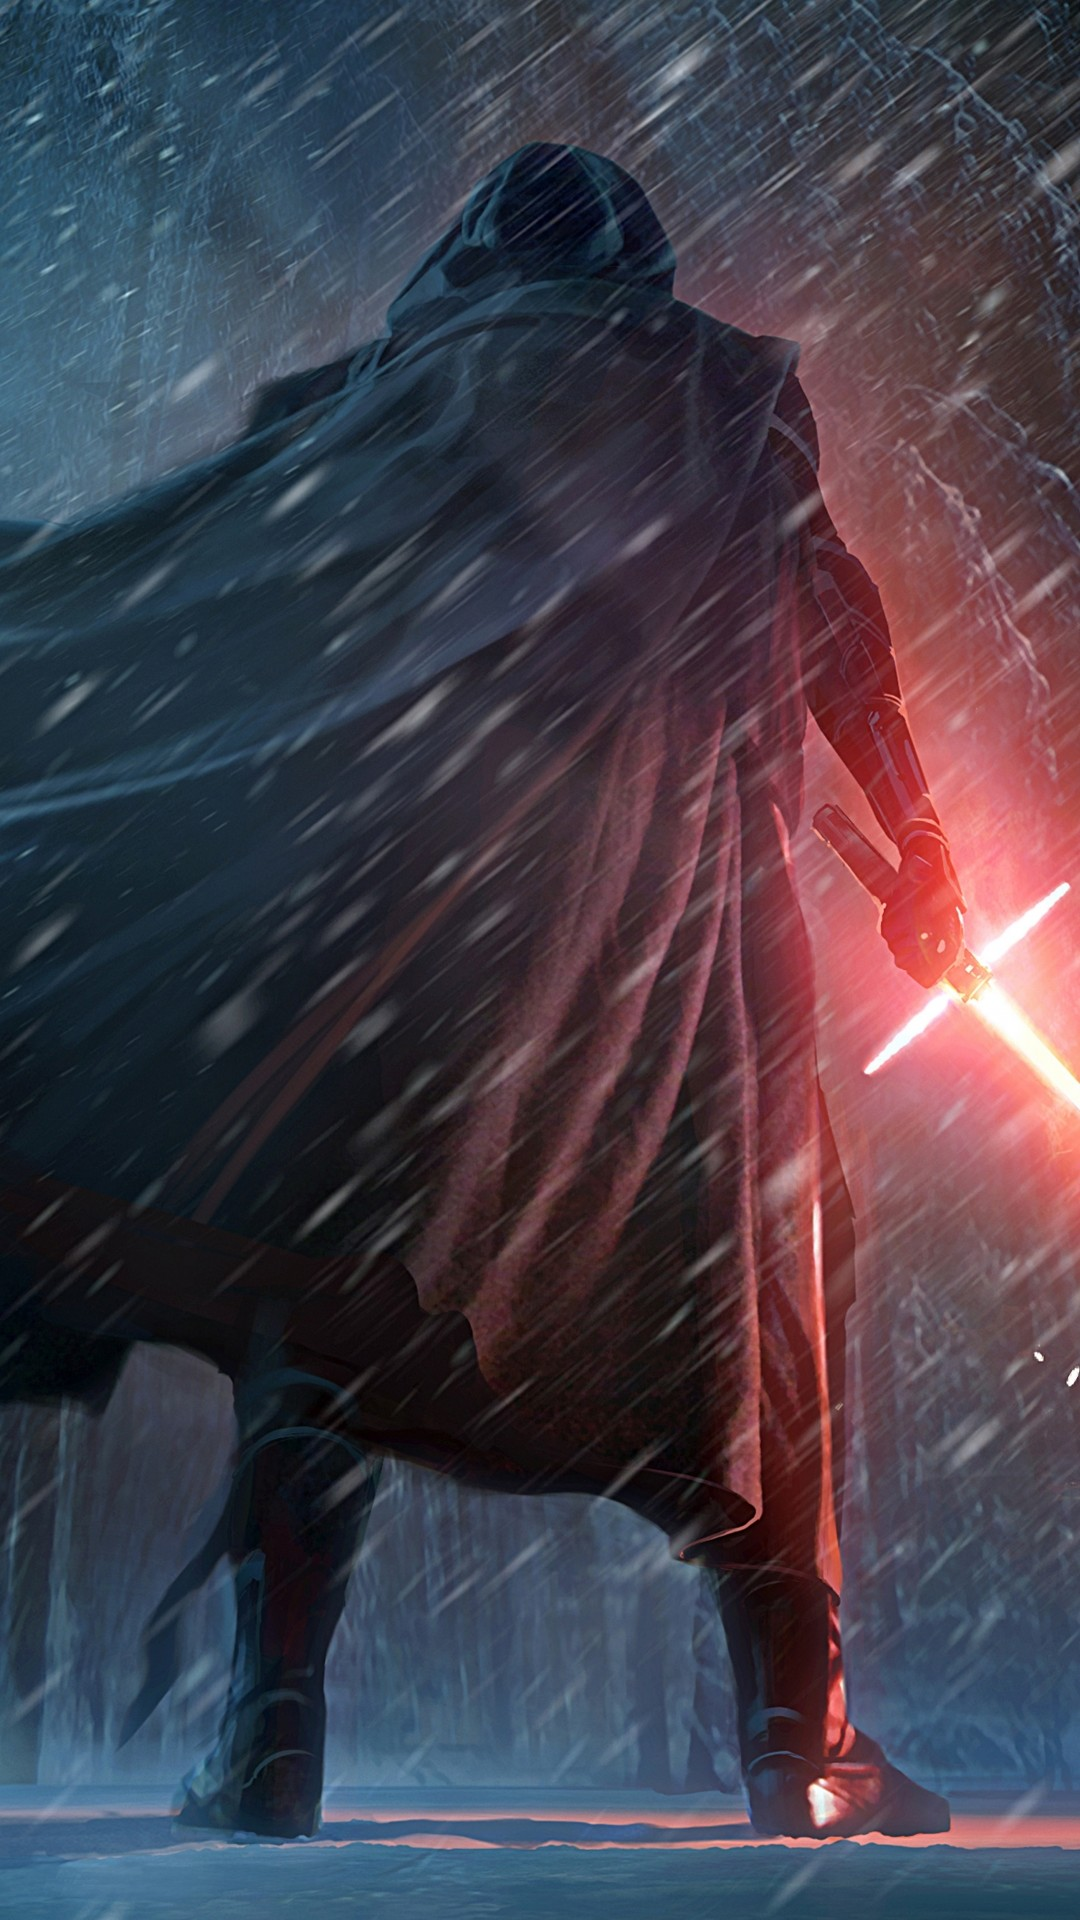 … wallpaper weekends star wars the force awakens for the iphone …